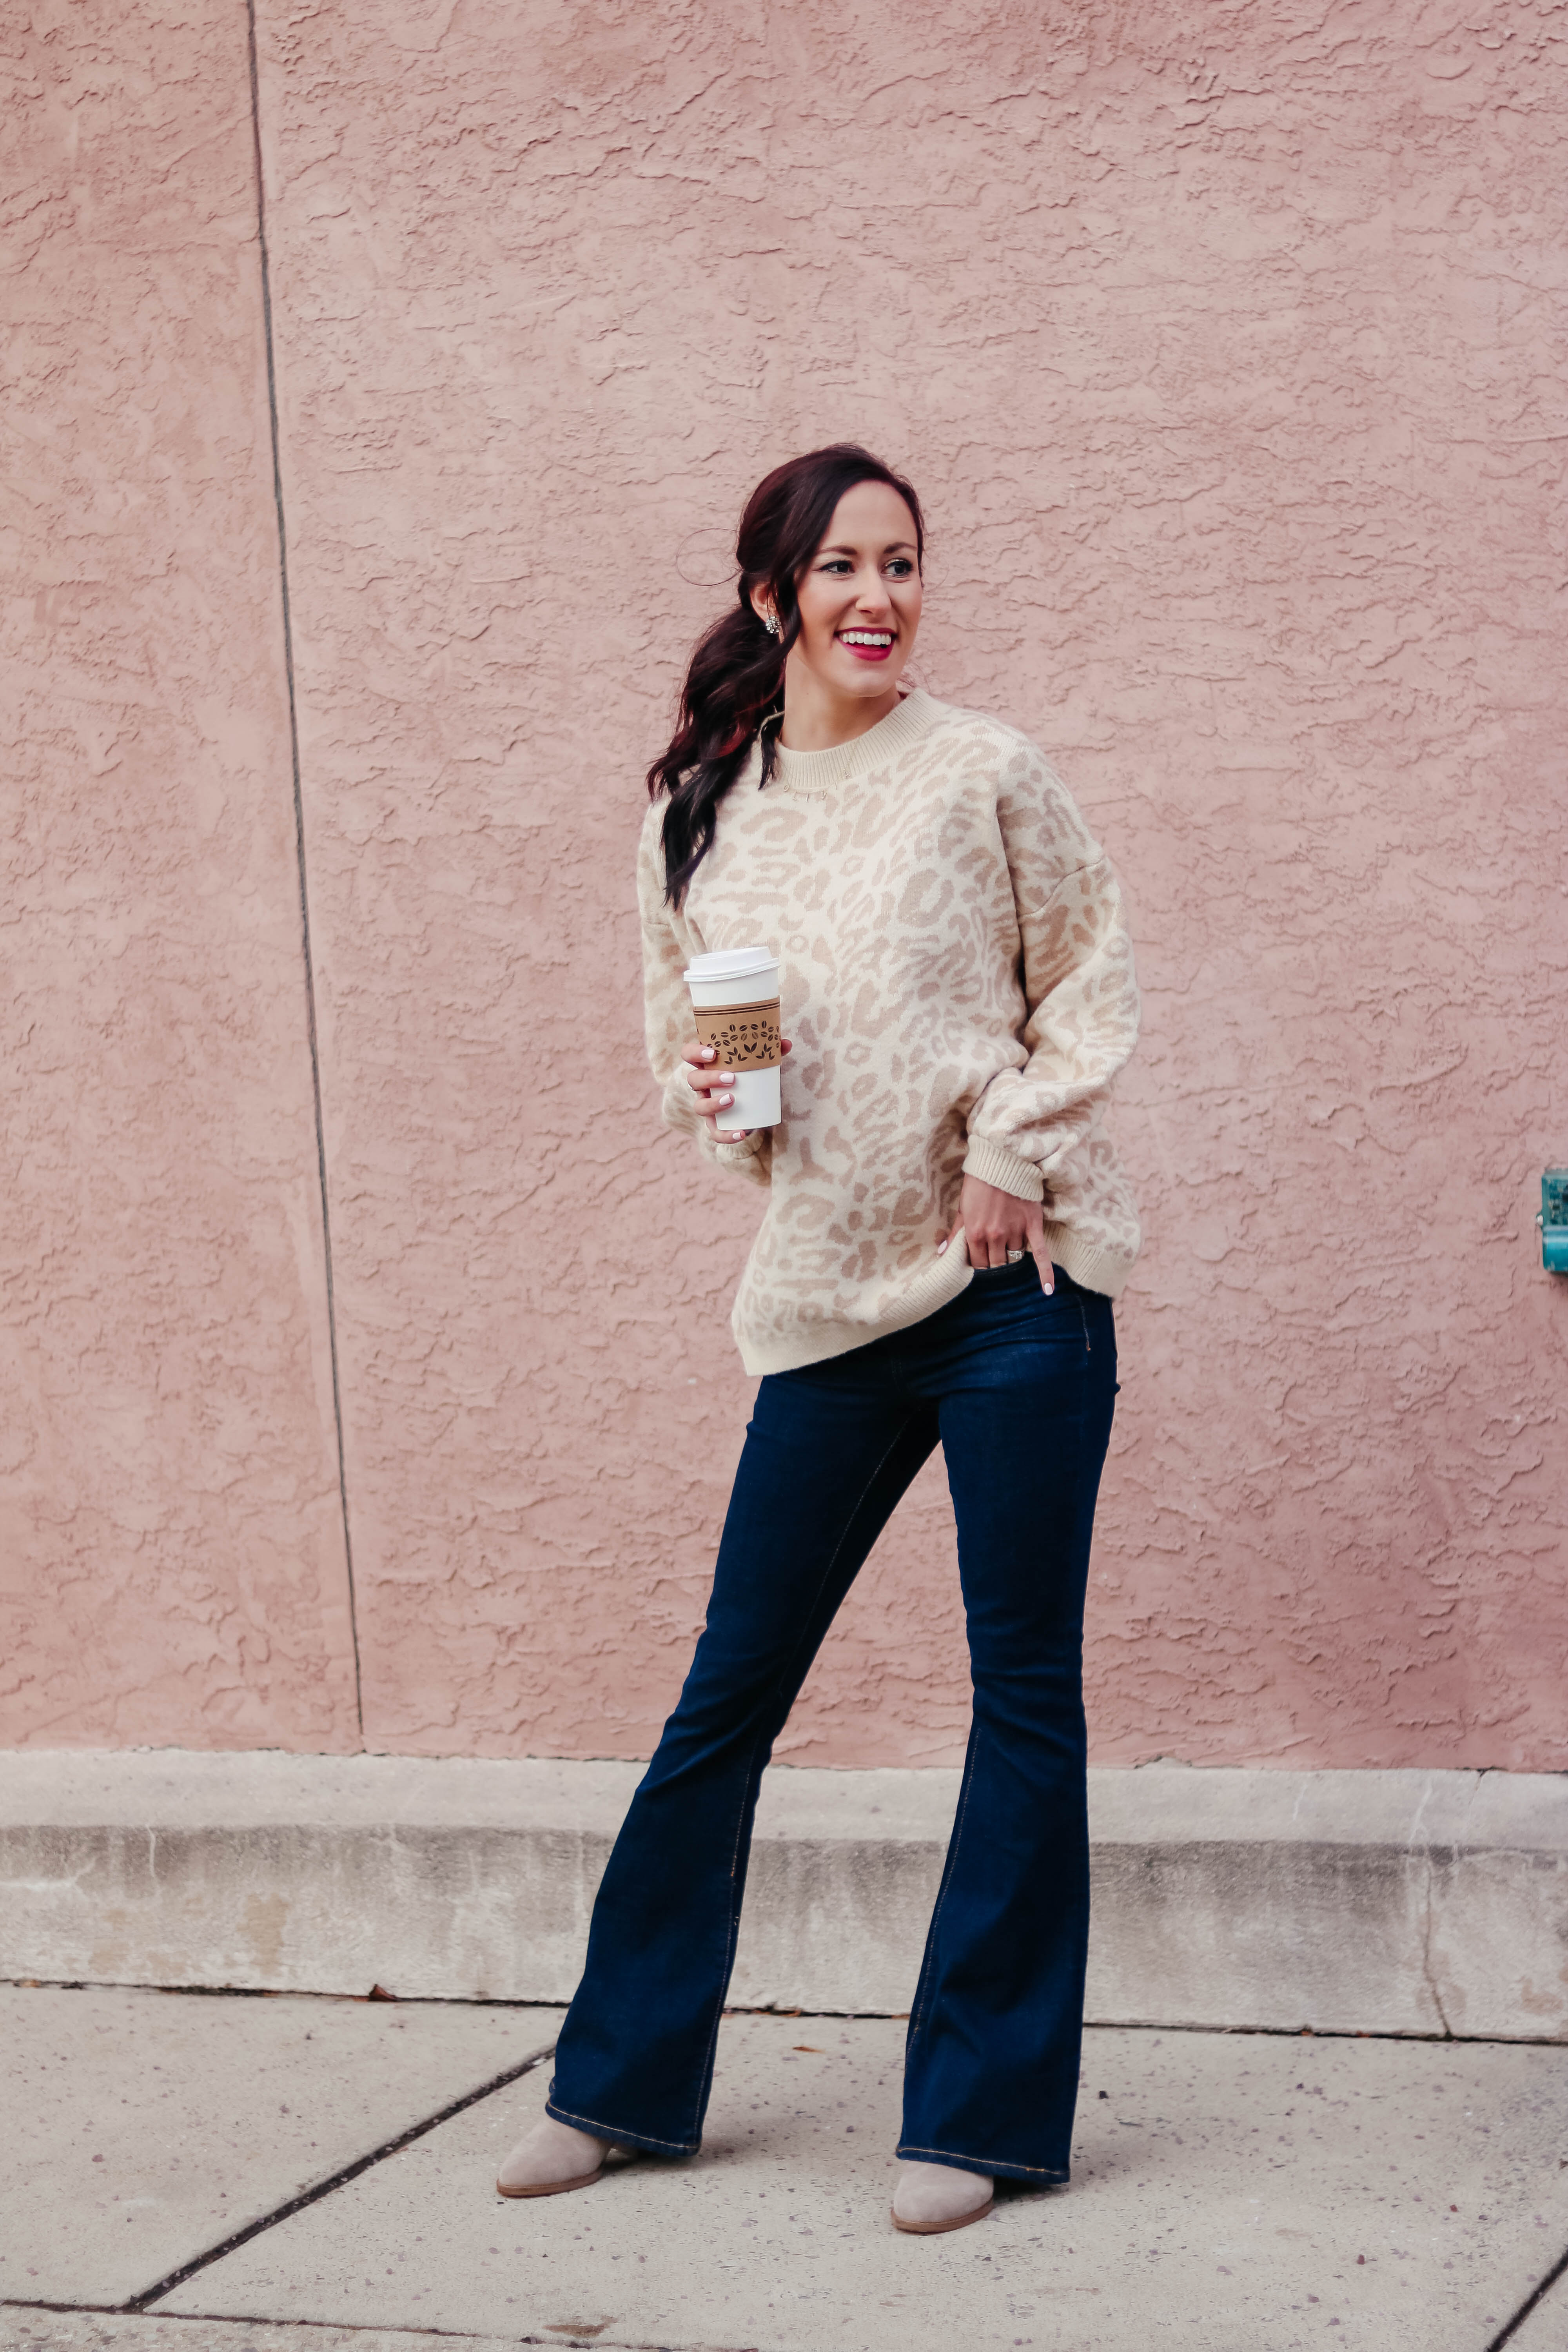 Trend To Try: FLARE JEANS - How to Rock + Shop Flare Jeans for your body type and closet!